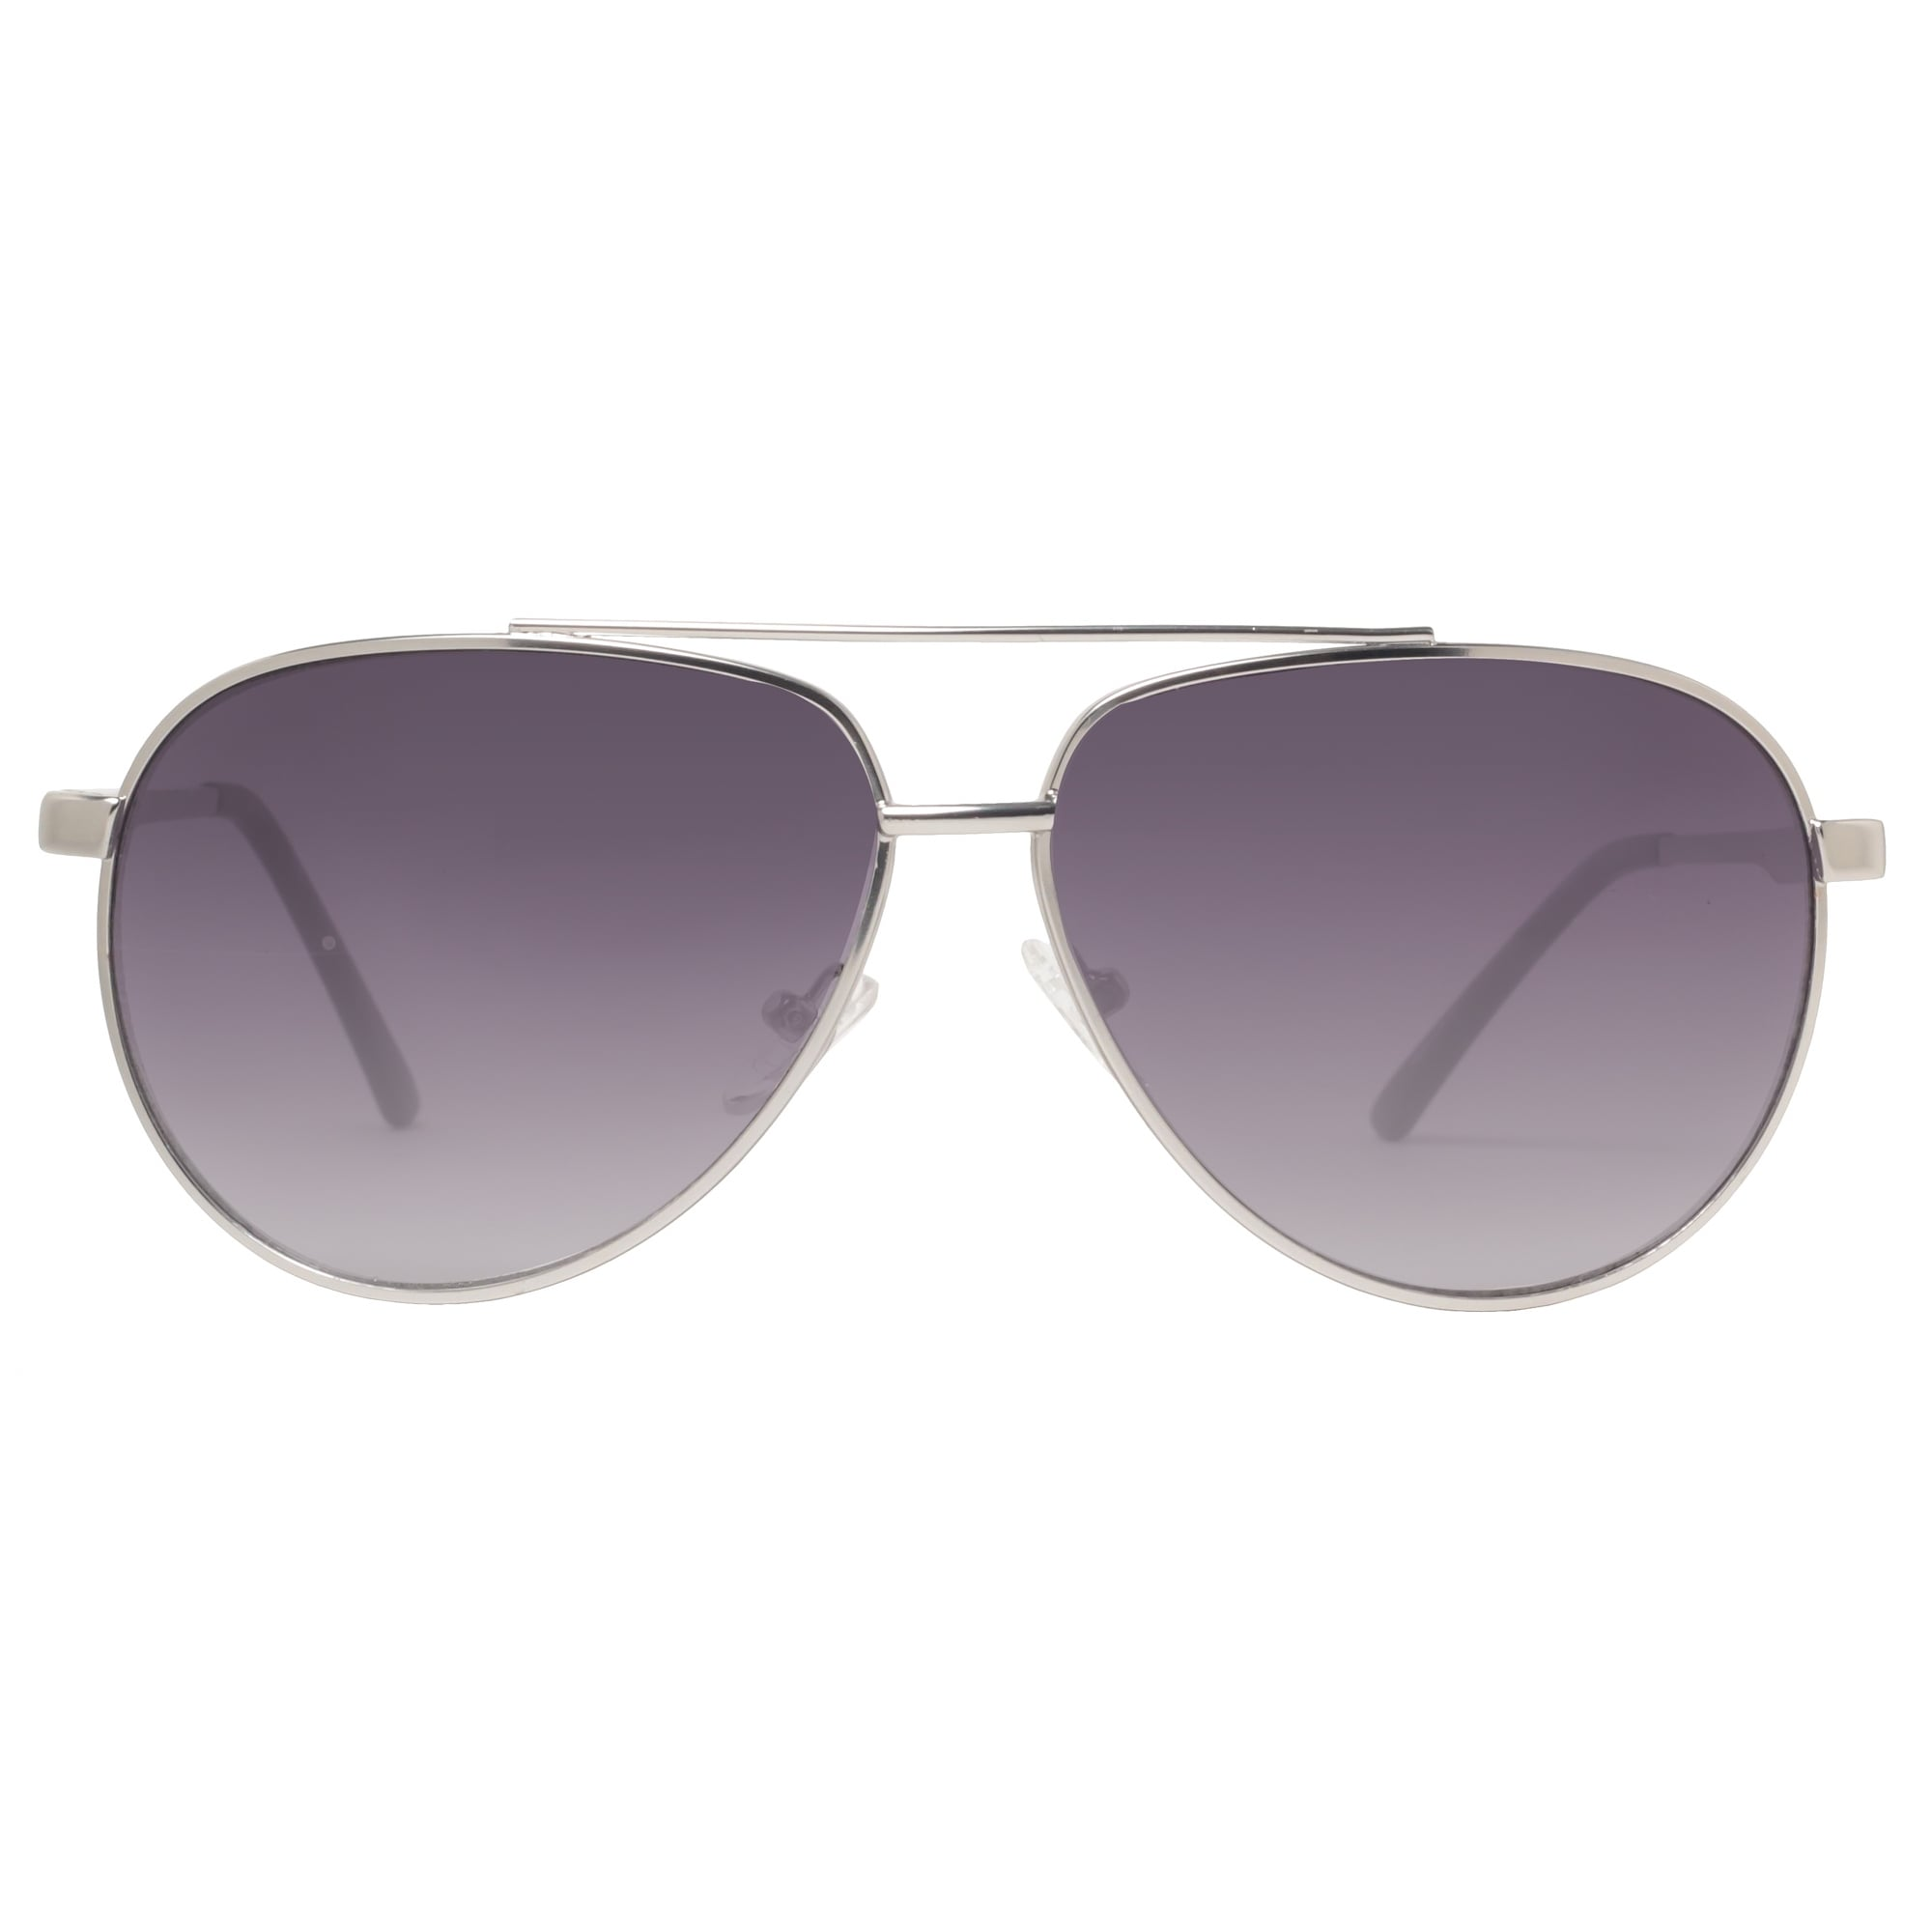 d71fa758c4 Shop Kenneth Cole Reaction KC1247 6111B Men s Silver Grey Gradient Aviator  Sunglasses - 61mm-12mm-140mm - Free Shipping On Orders Over  45 - Overstock  - ...